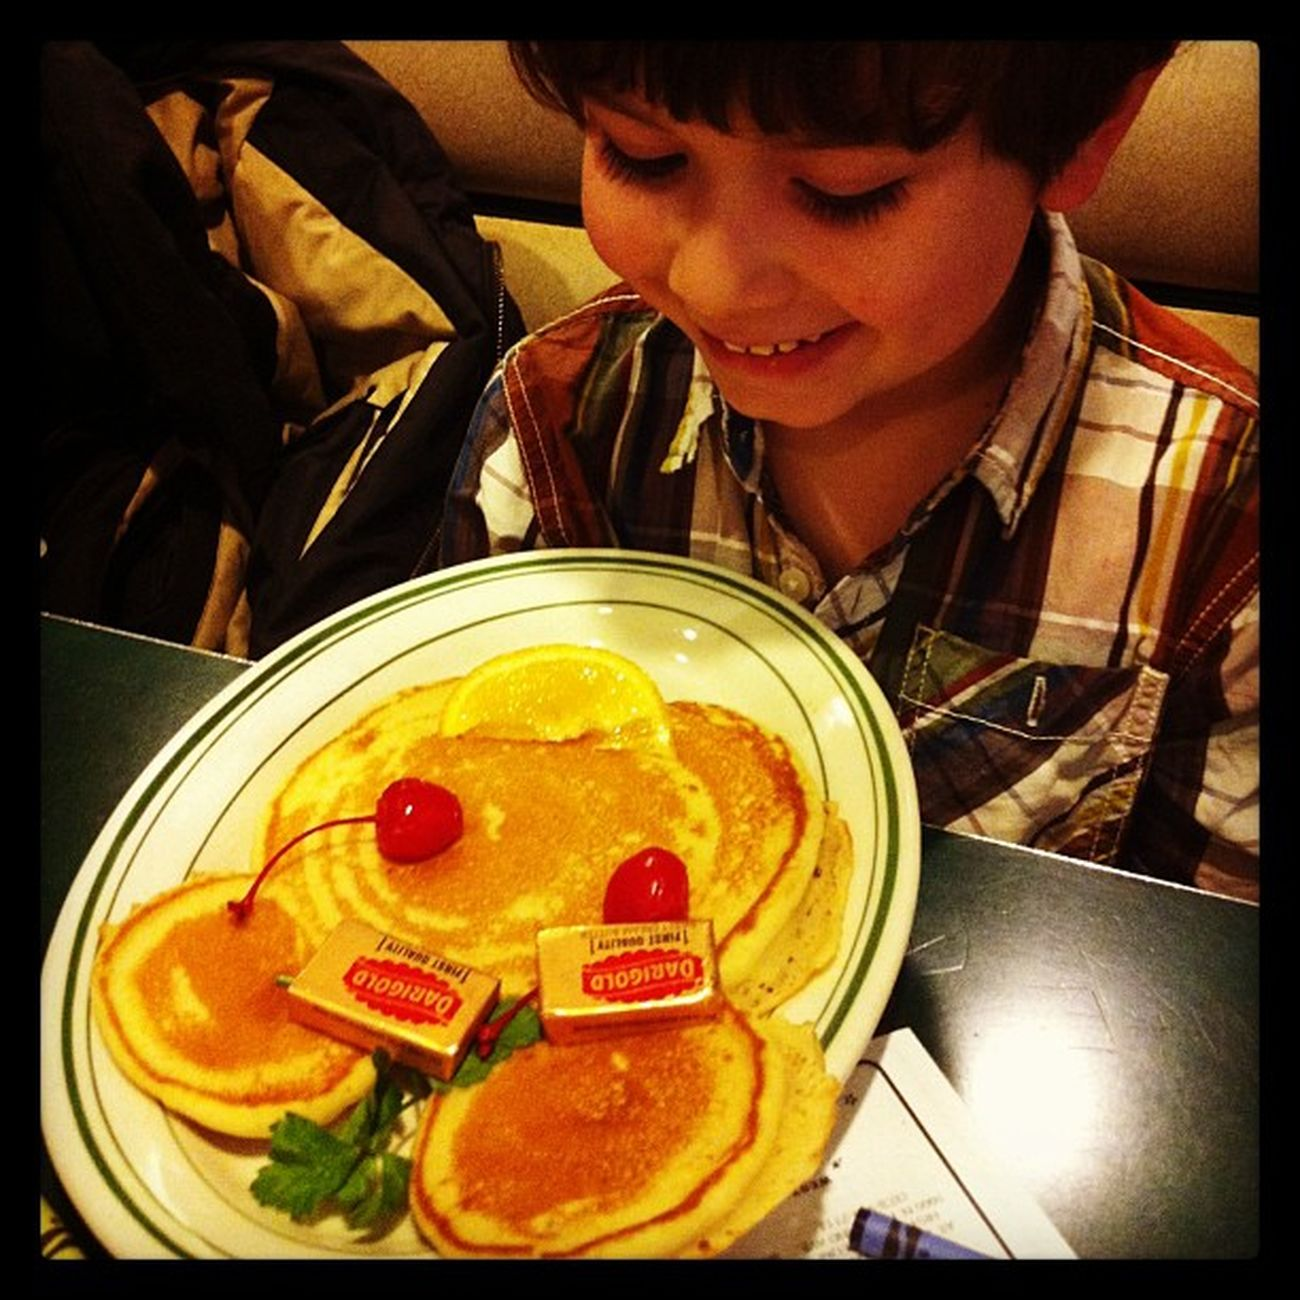 Throwing shapes, pancake shapes #dinertour #mels Mels Dinertour